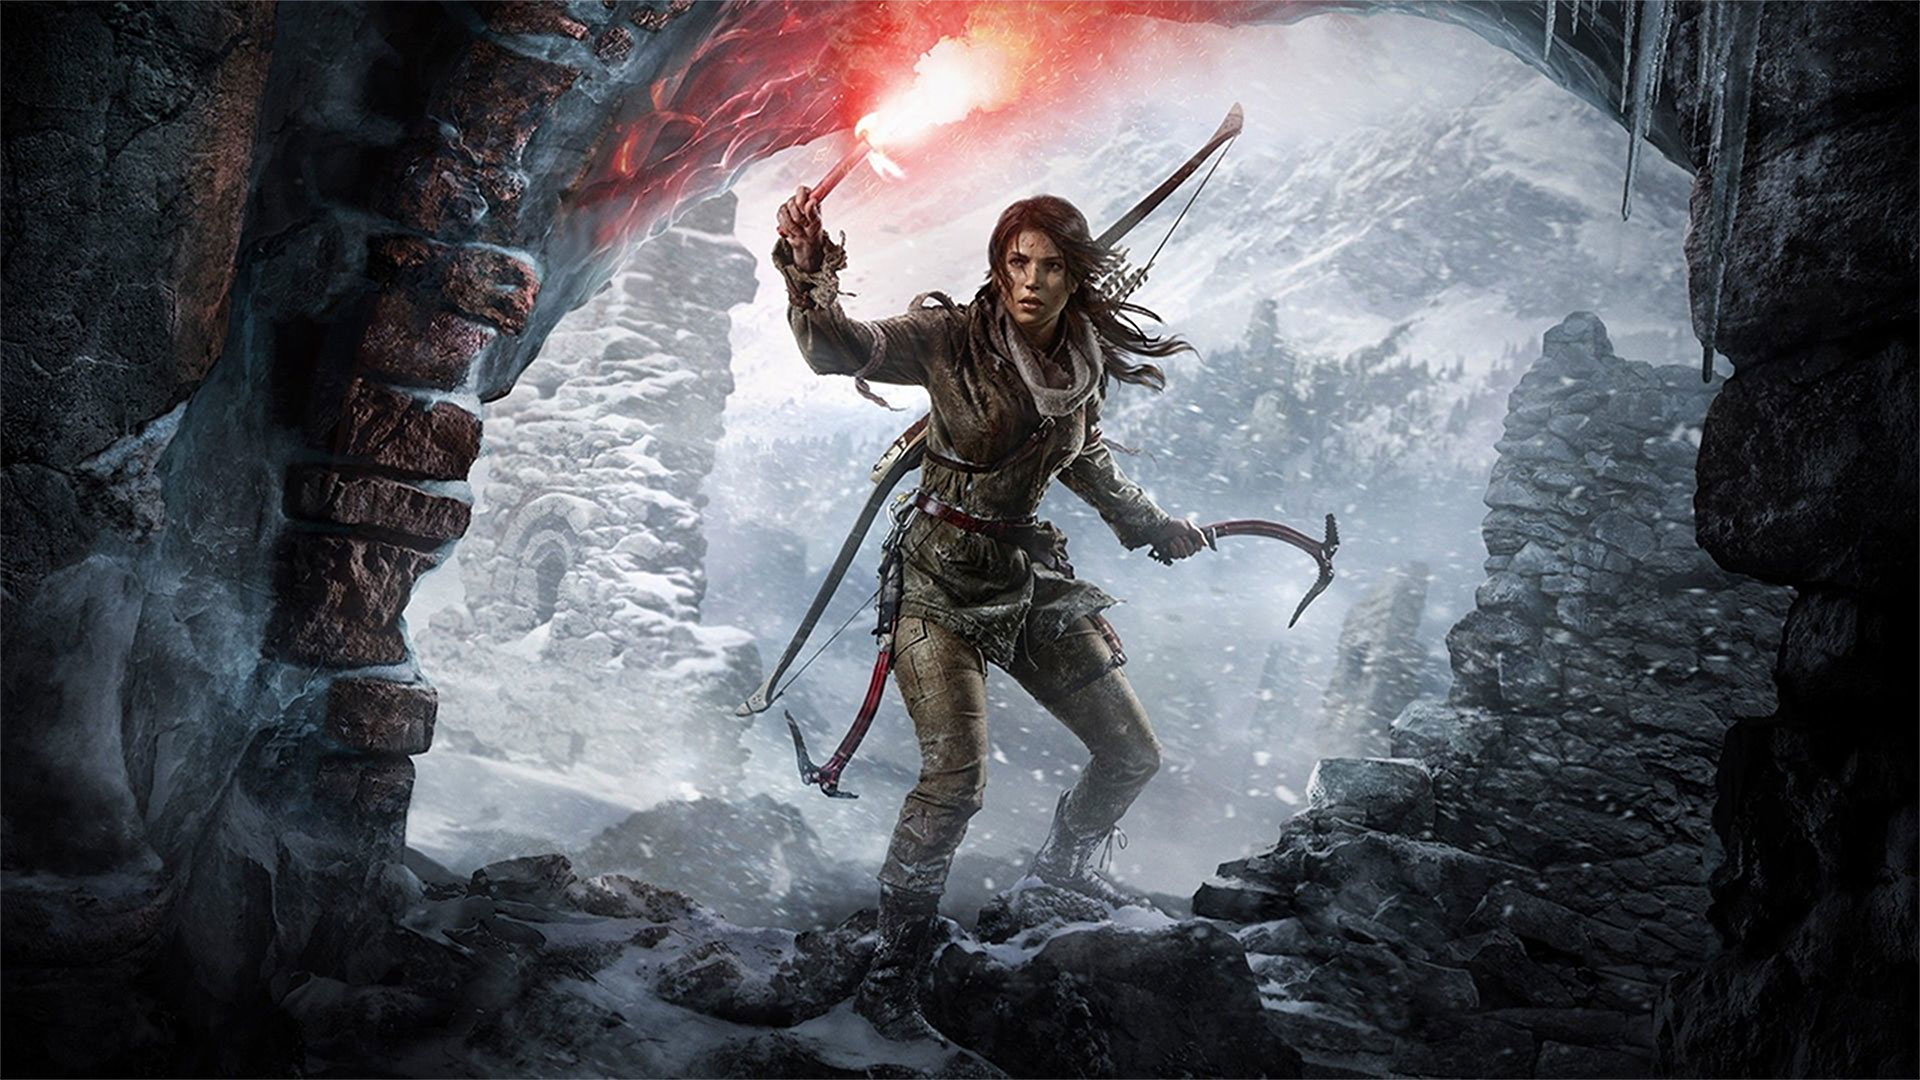 Rise of the tomb raider wallpapers in ultra hd 4k - Rise of the tomb raider 4k wallpaper ...